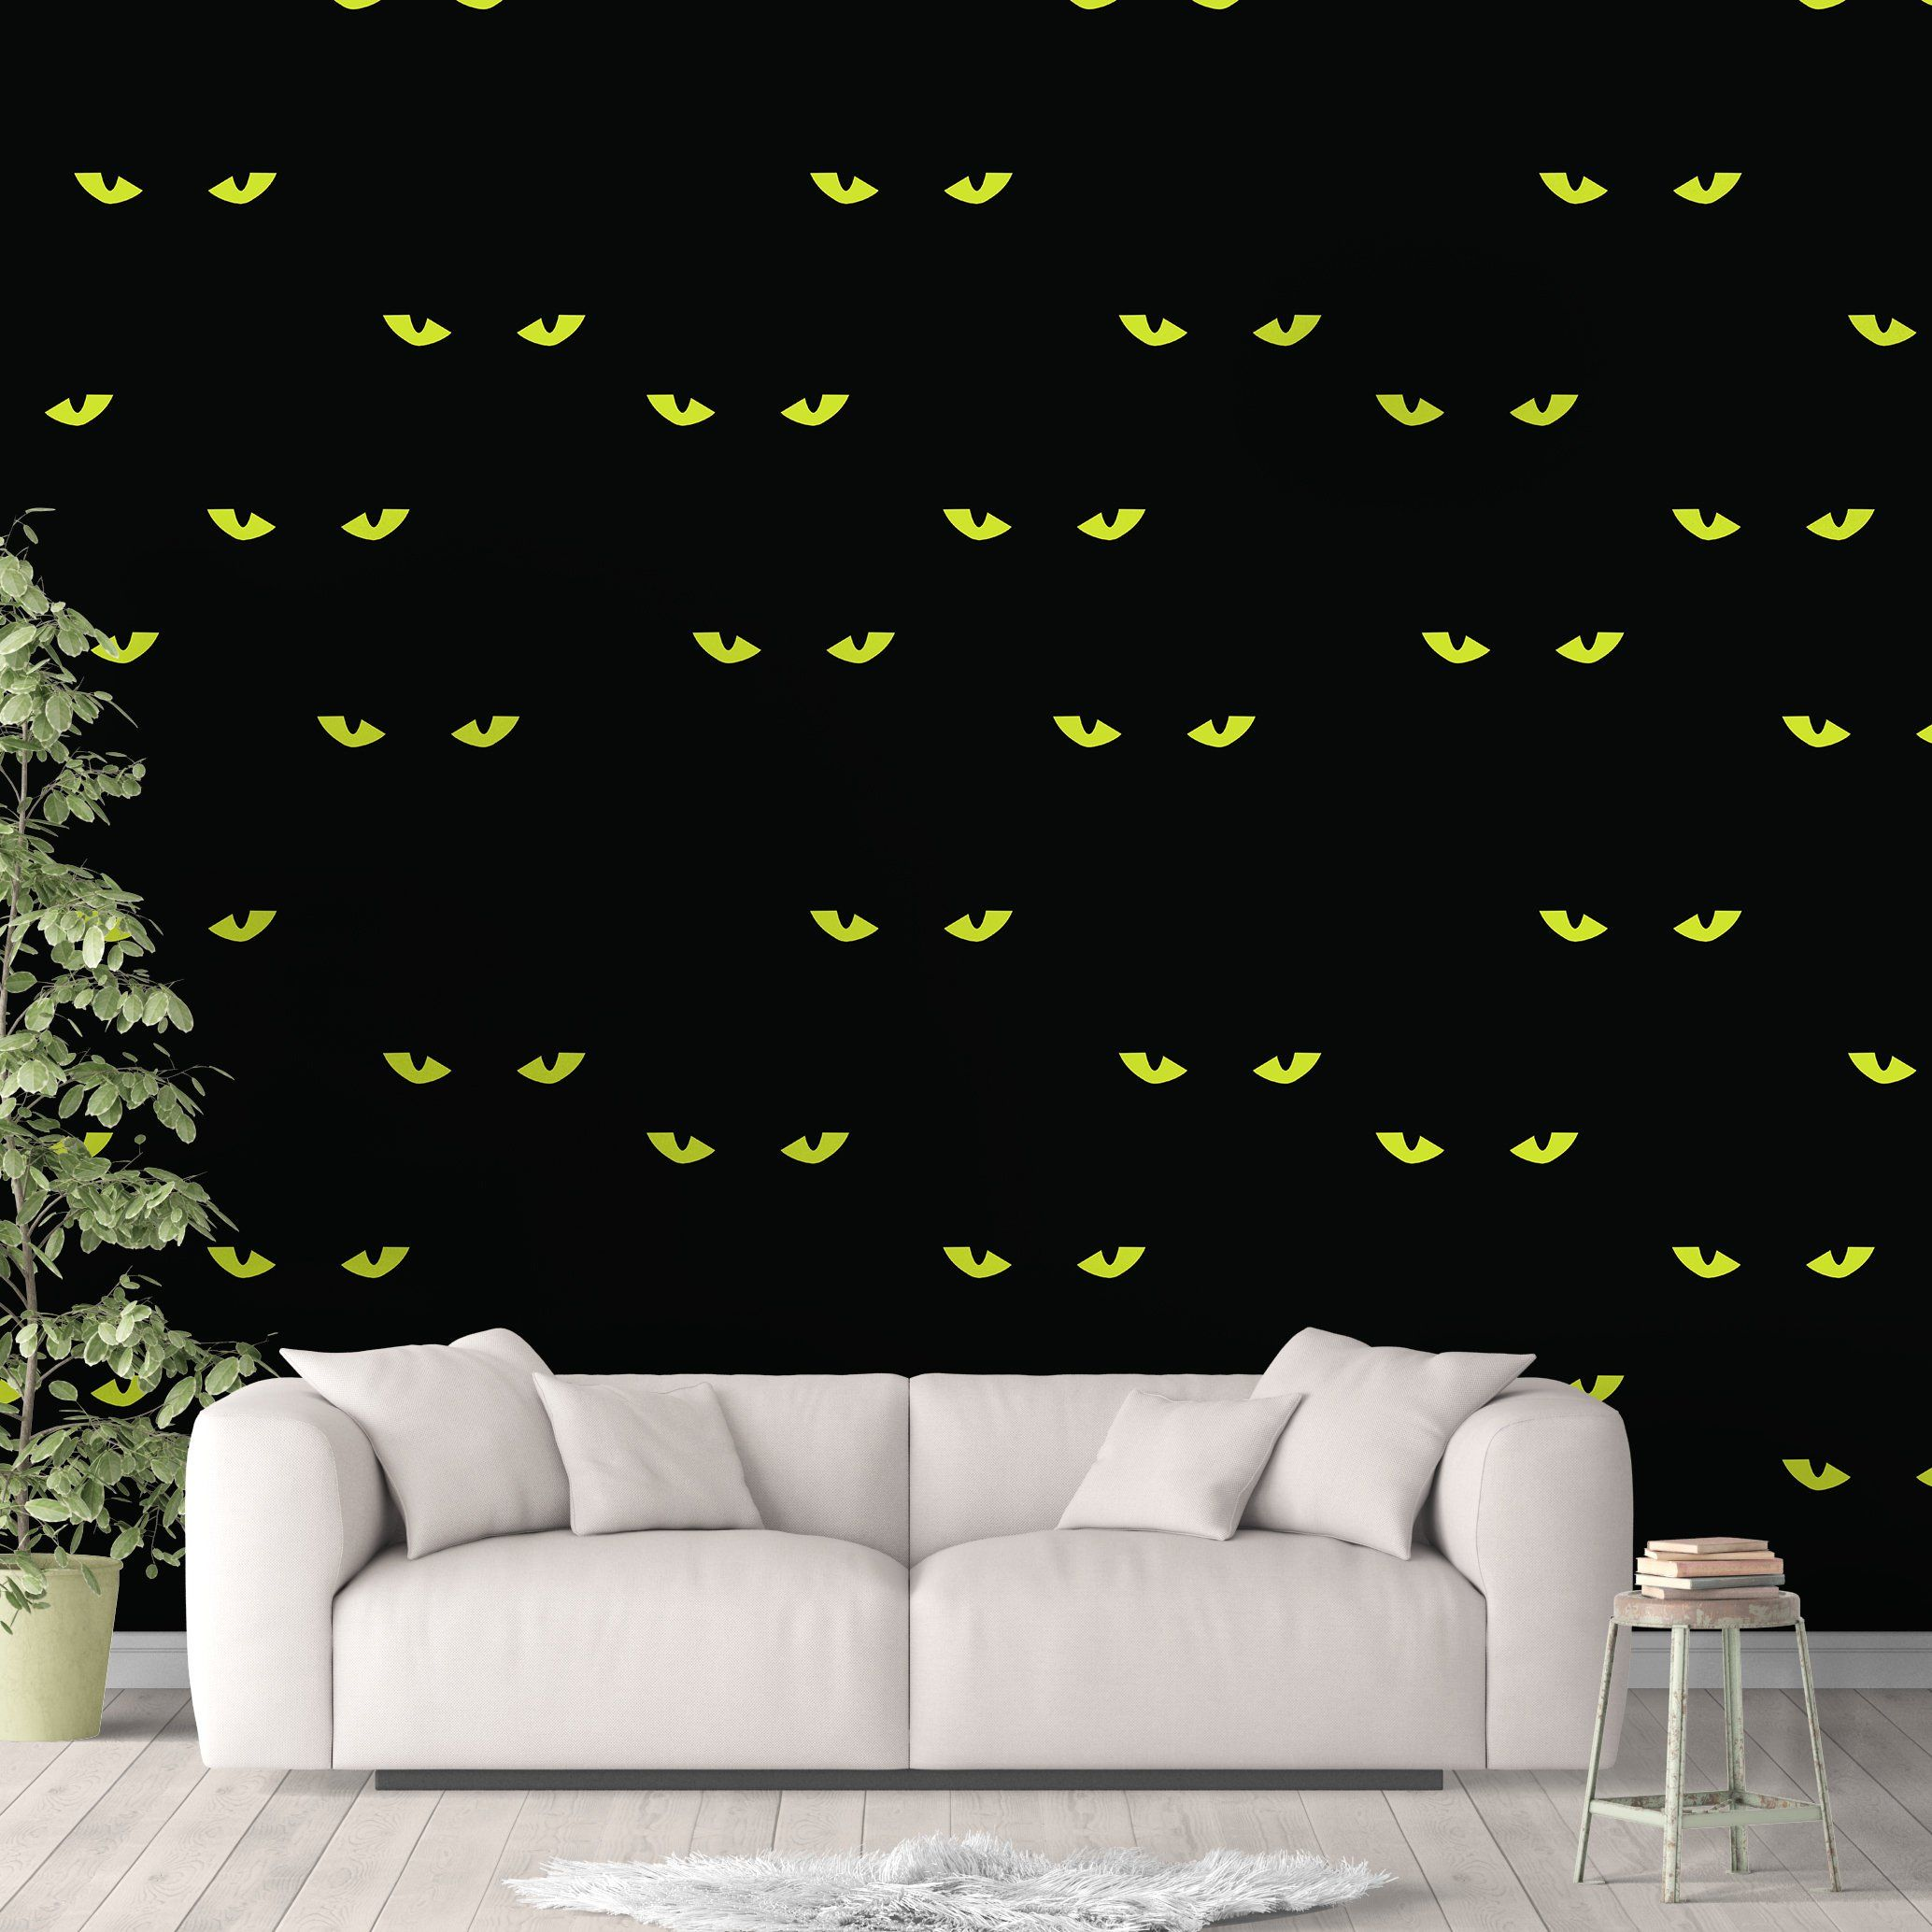 Spooky Cat Animal Wallpaper, Black Cat Wall Cling, Scary Wall Decal, Kitty Peel and Stick, Halloween Wall Decor, Cat Eyes Pattern, Horror Decor - Smooth Wall Decal / 1 roll: 24W x 84H